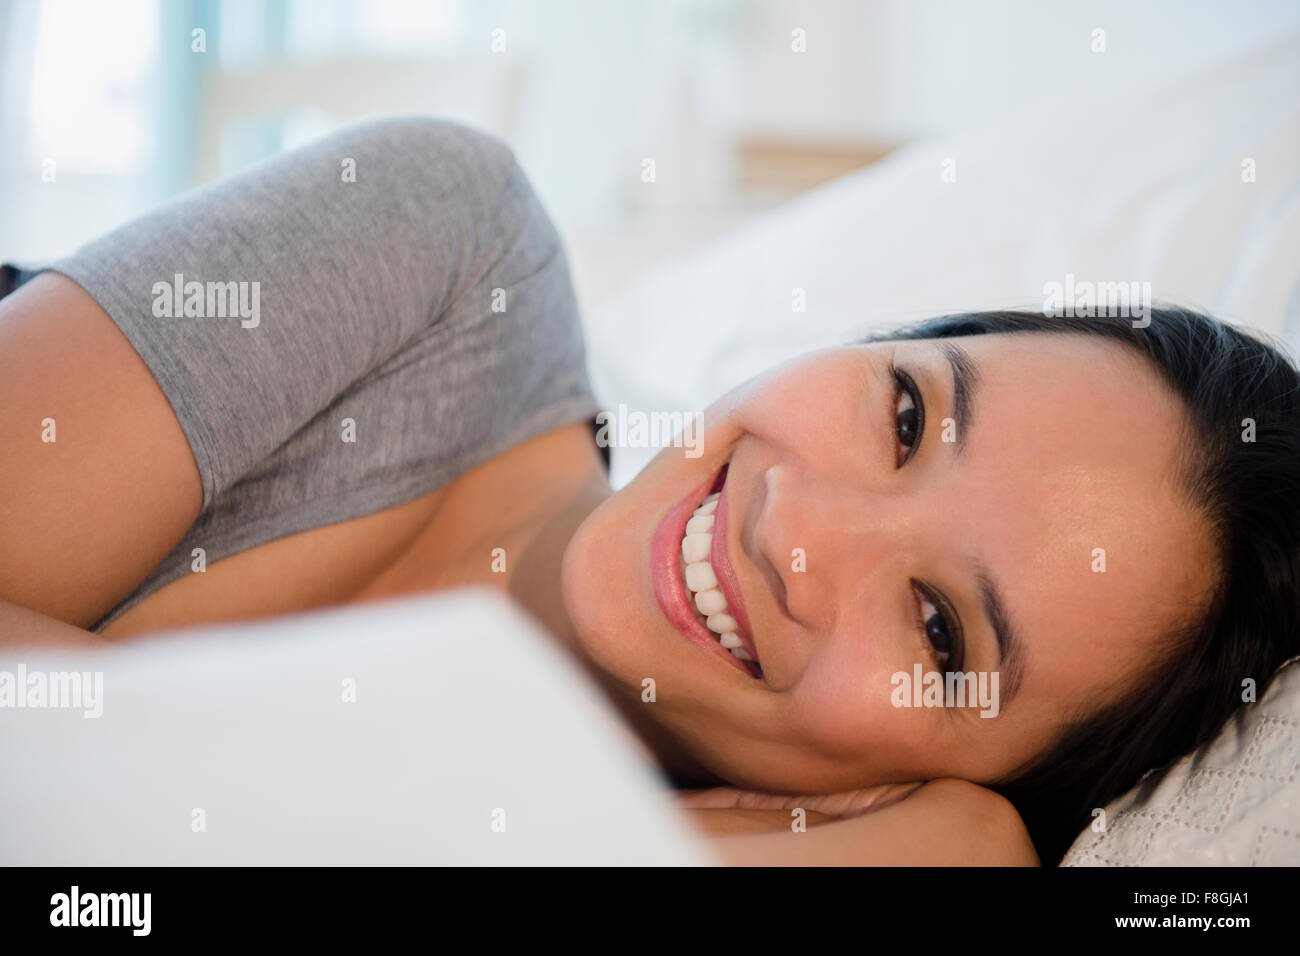 Chinese woman laying on bed Banque D'Images